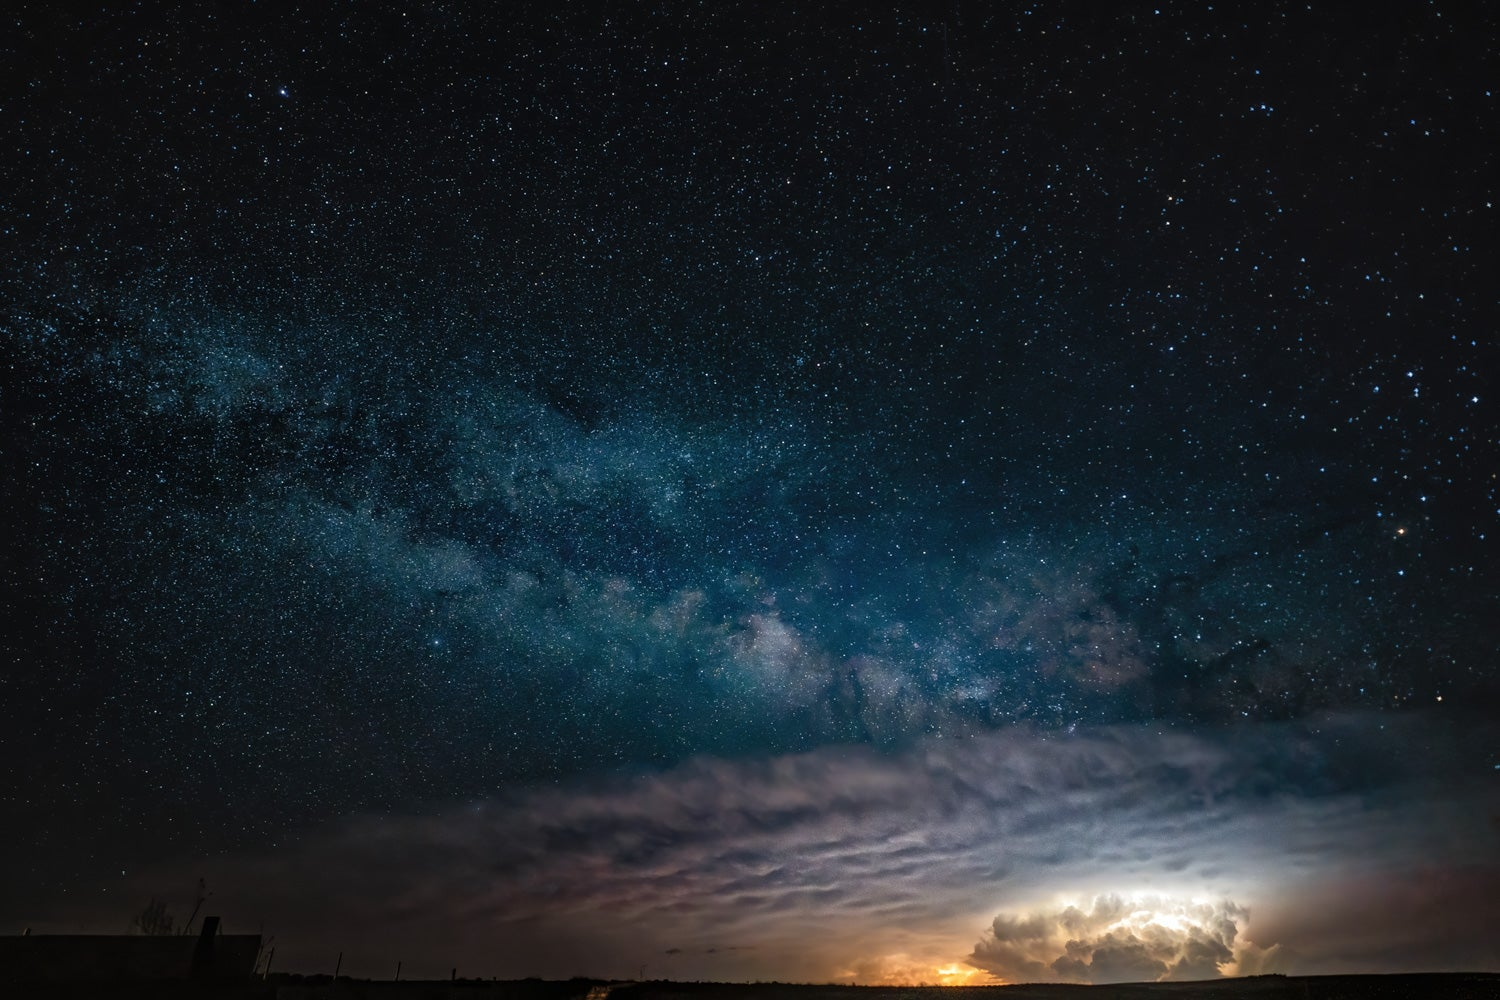 Thunderstorm with Milky Way